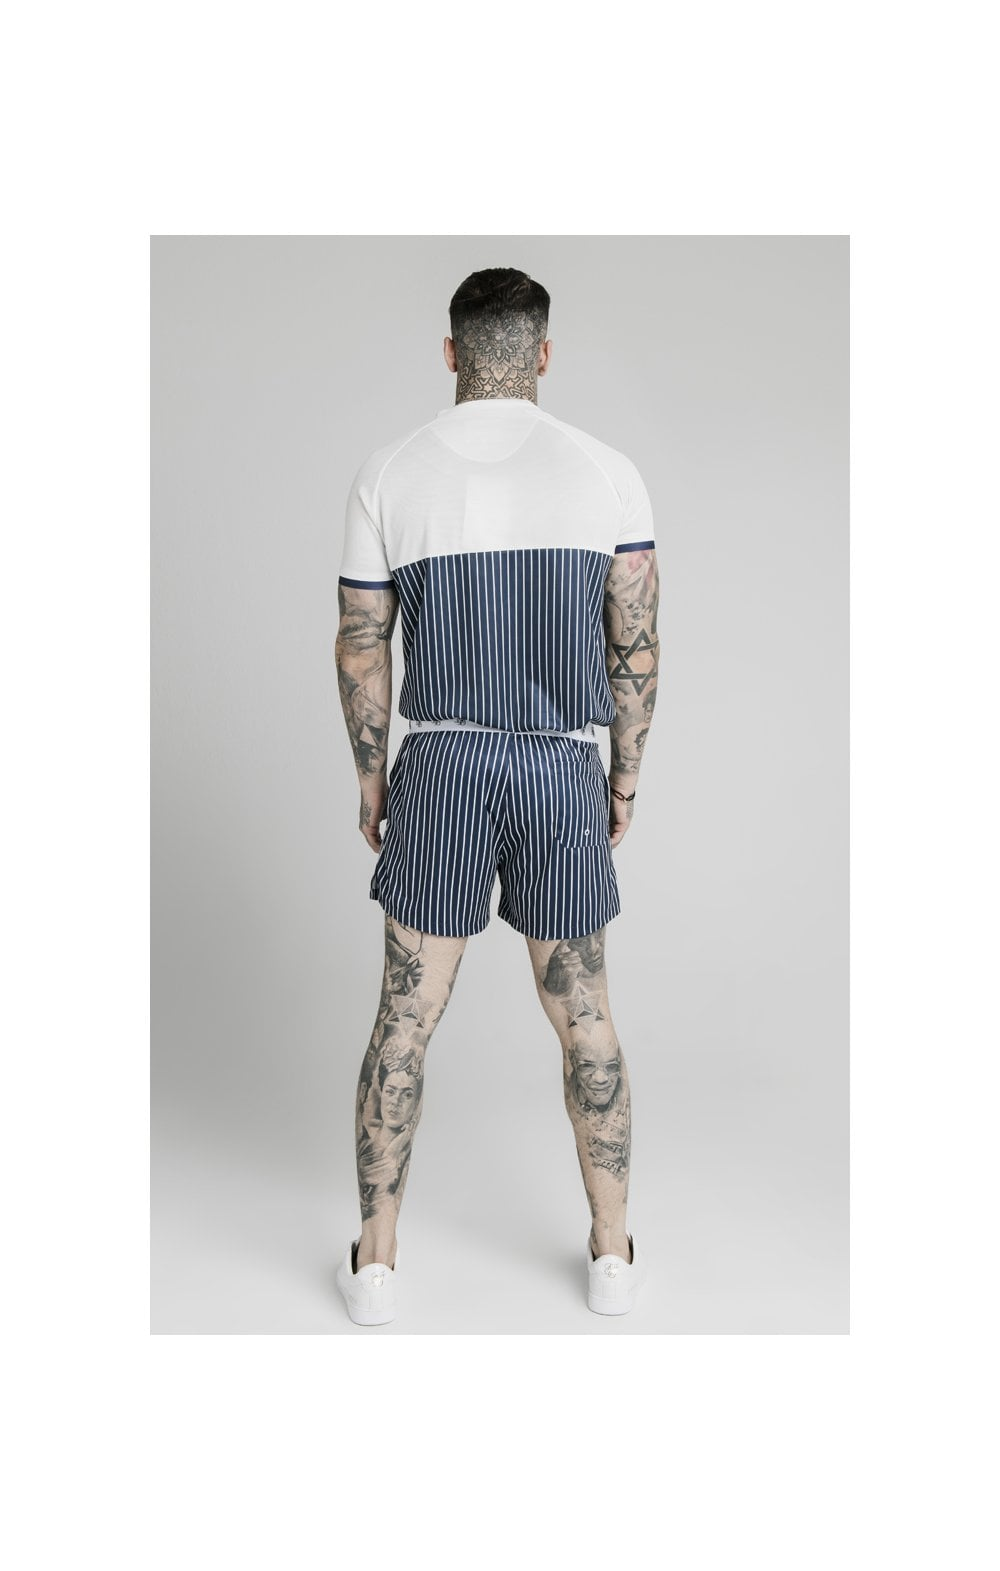 SikSilk Eyelet Elasticated Swim Shorts - Navy & White (8)